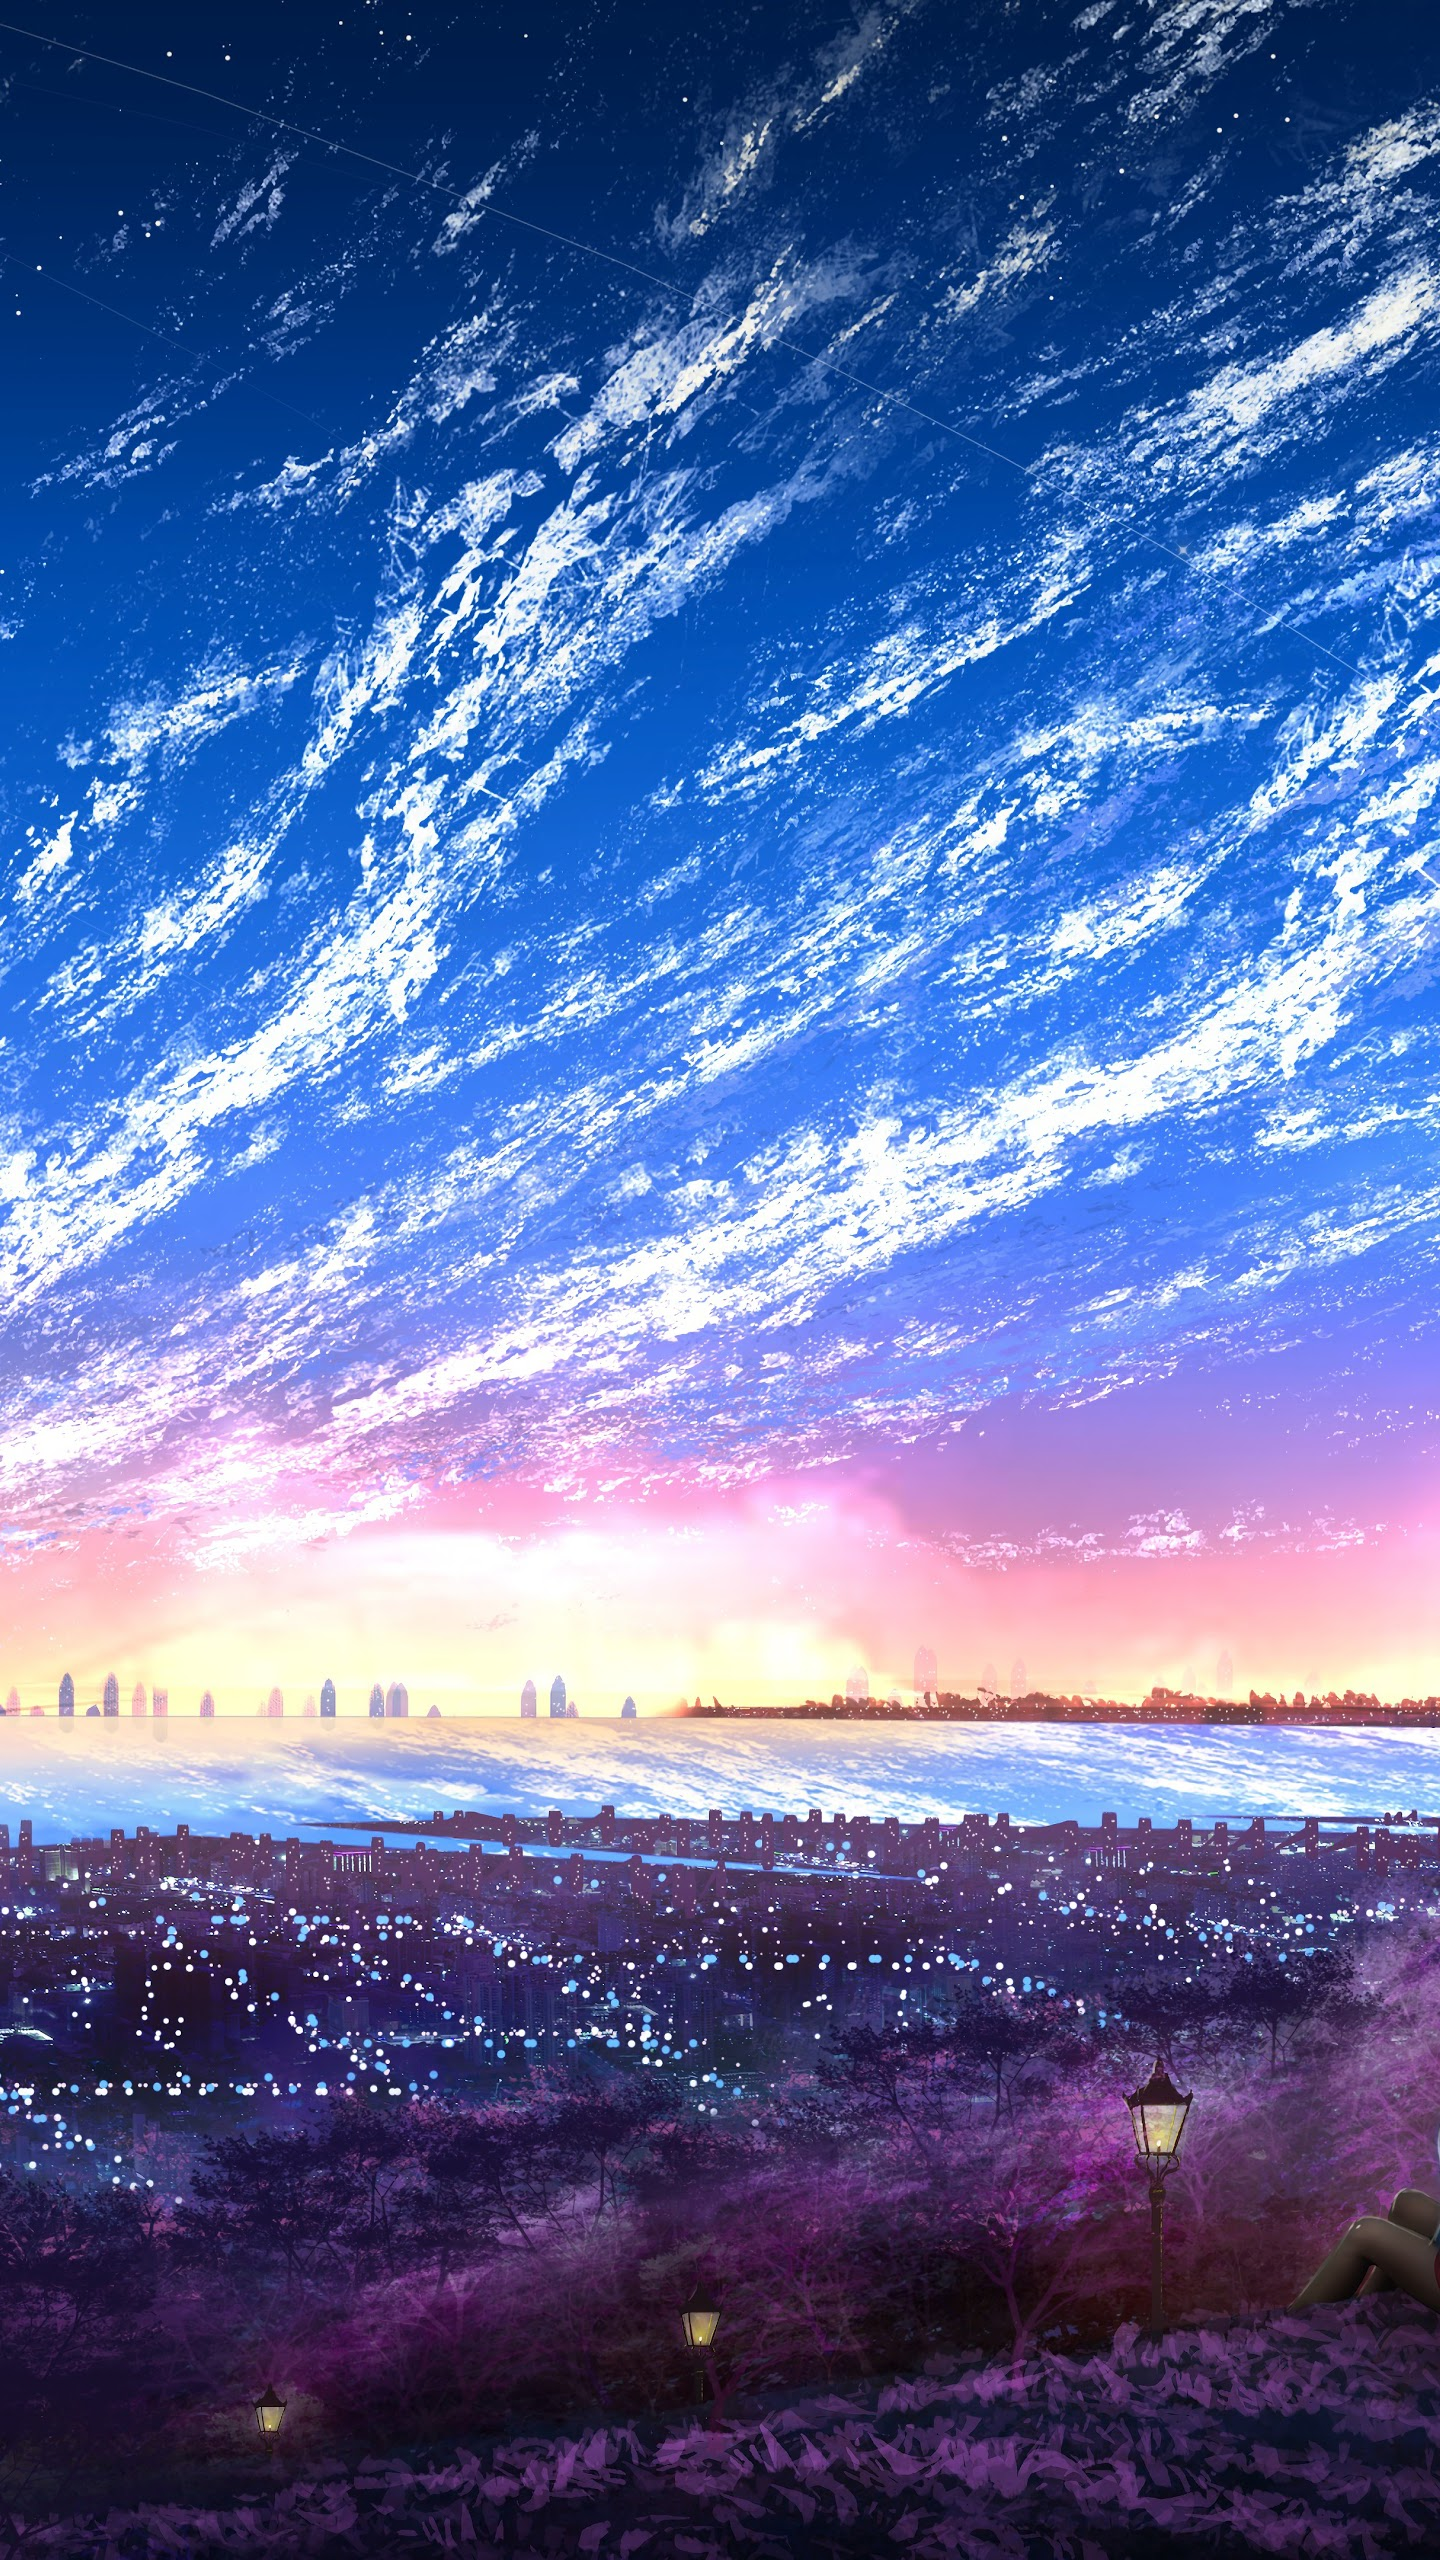 Sky Anime Scenery Wallpapers Wallpaper Cave